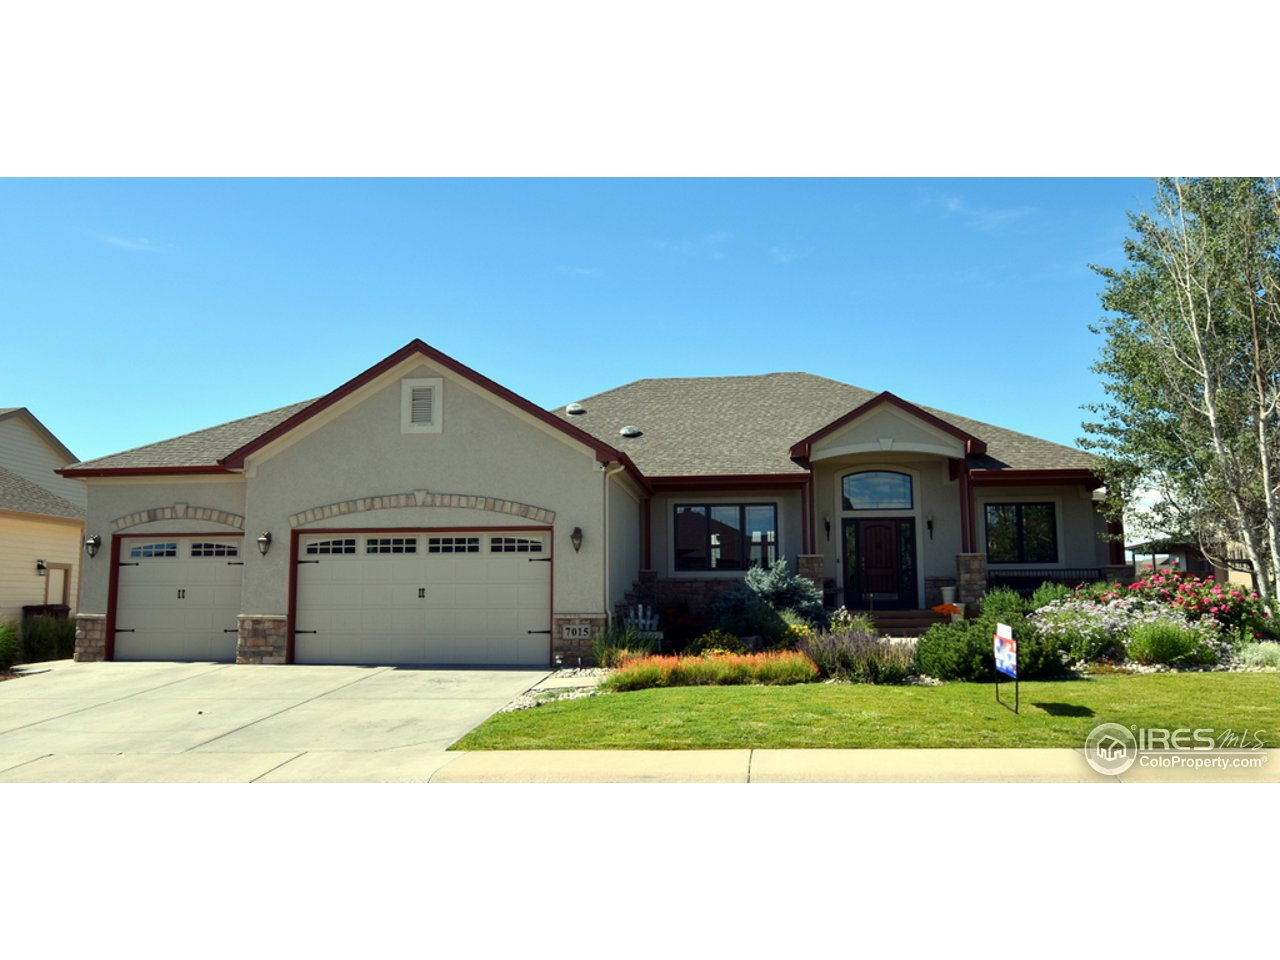 7015 Royal Country Down Dr, Windsor, CO 80550